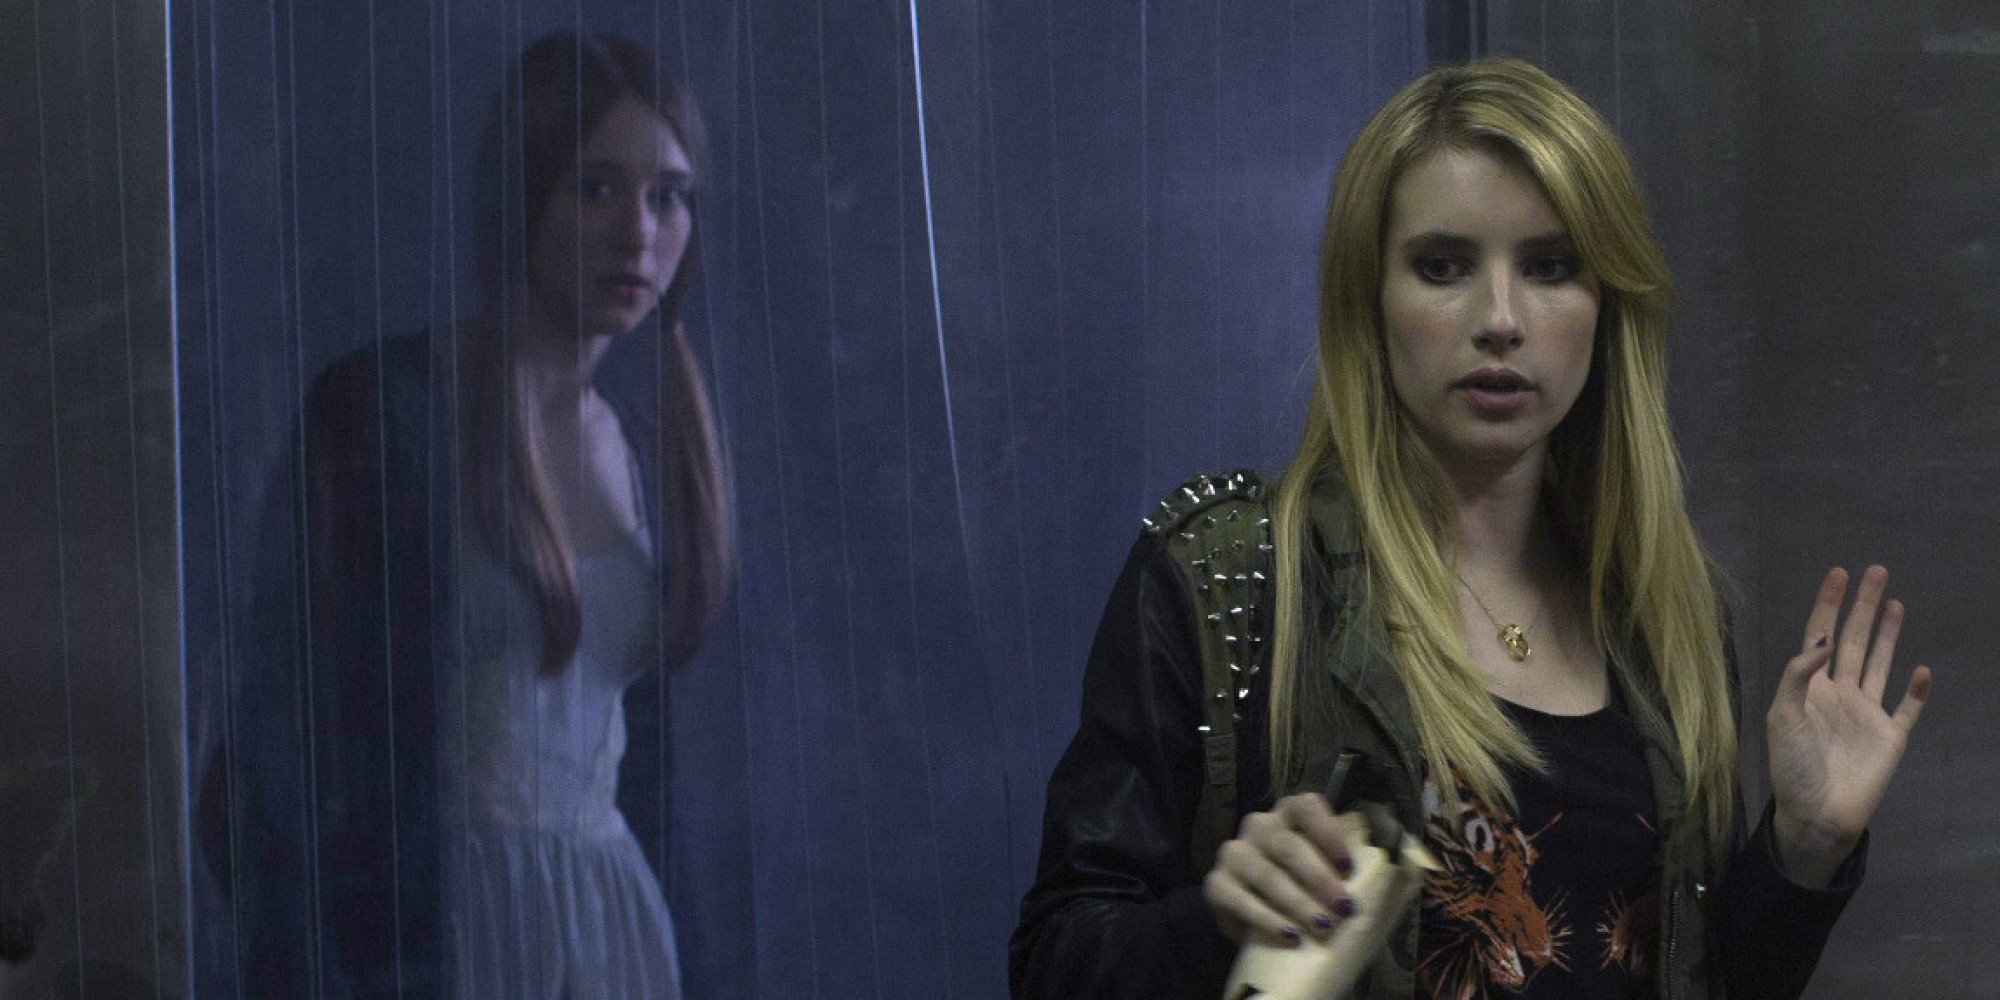 American Horror Story Coven Episode 2 Recap The Whole Not A Sum